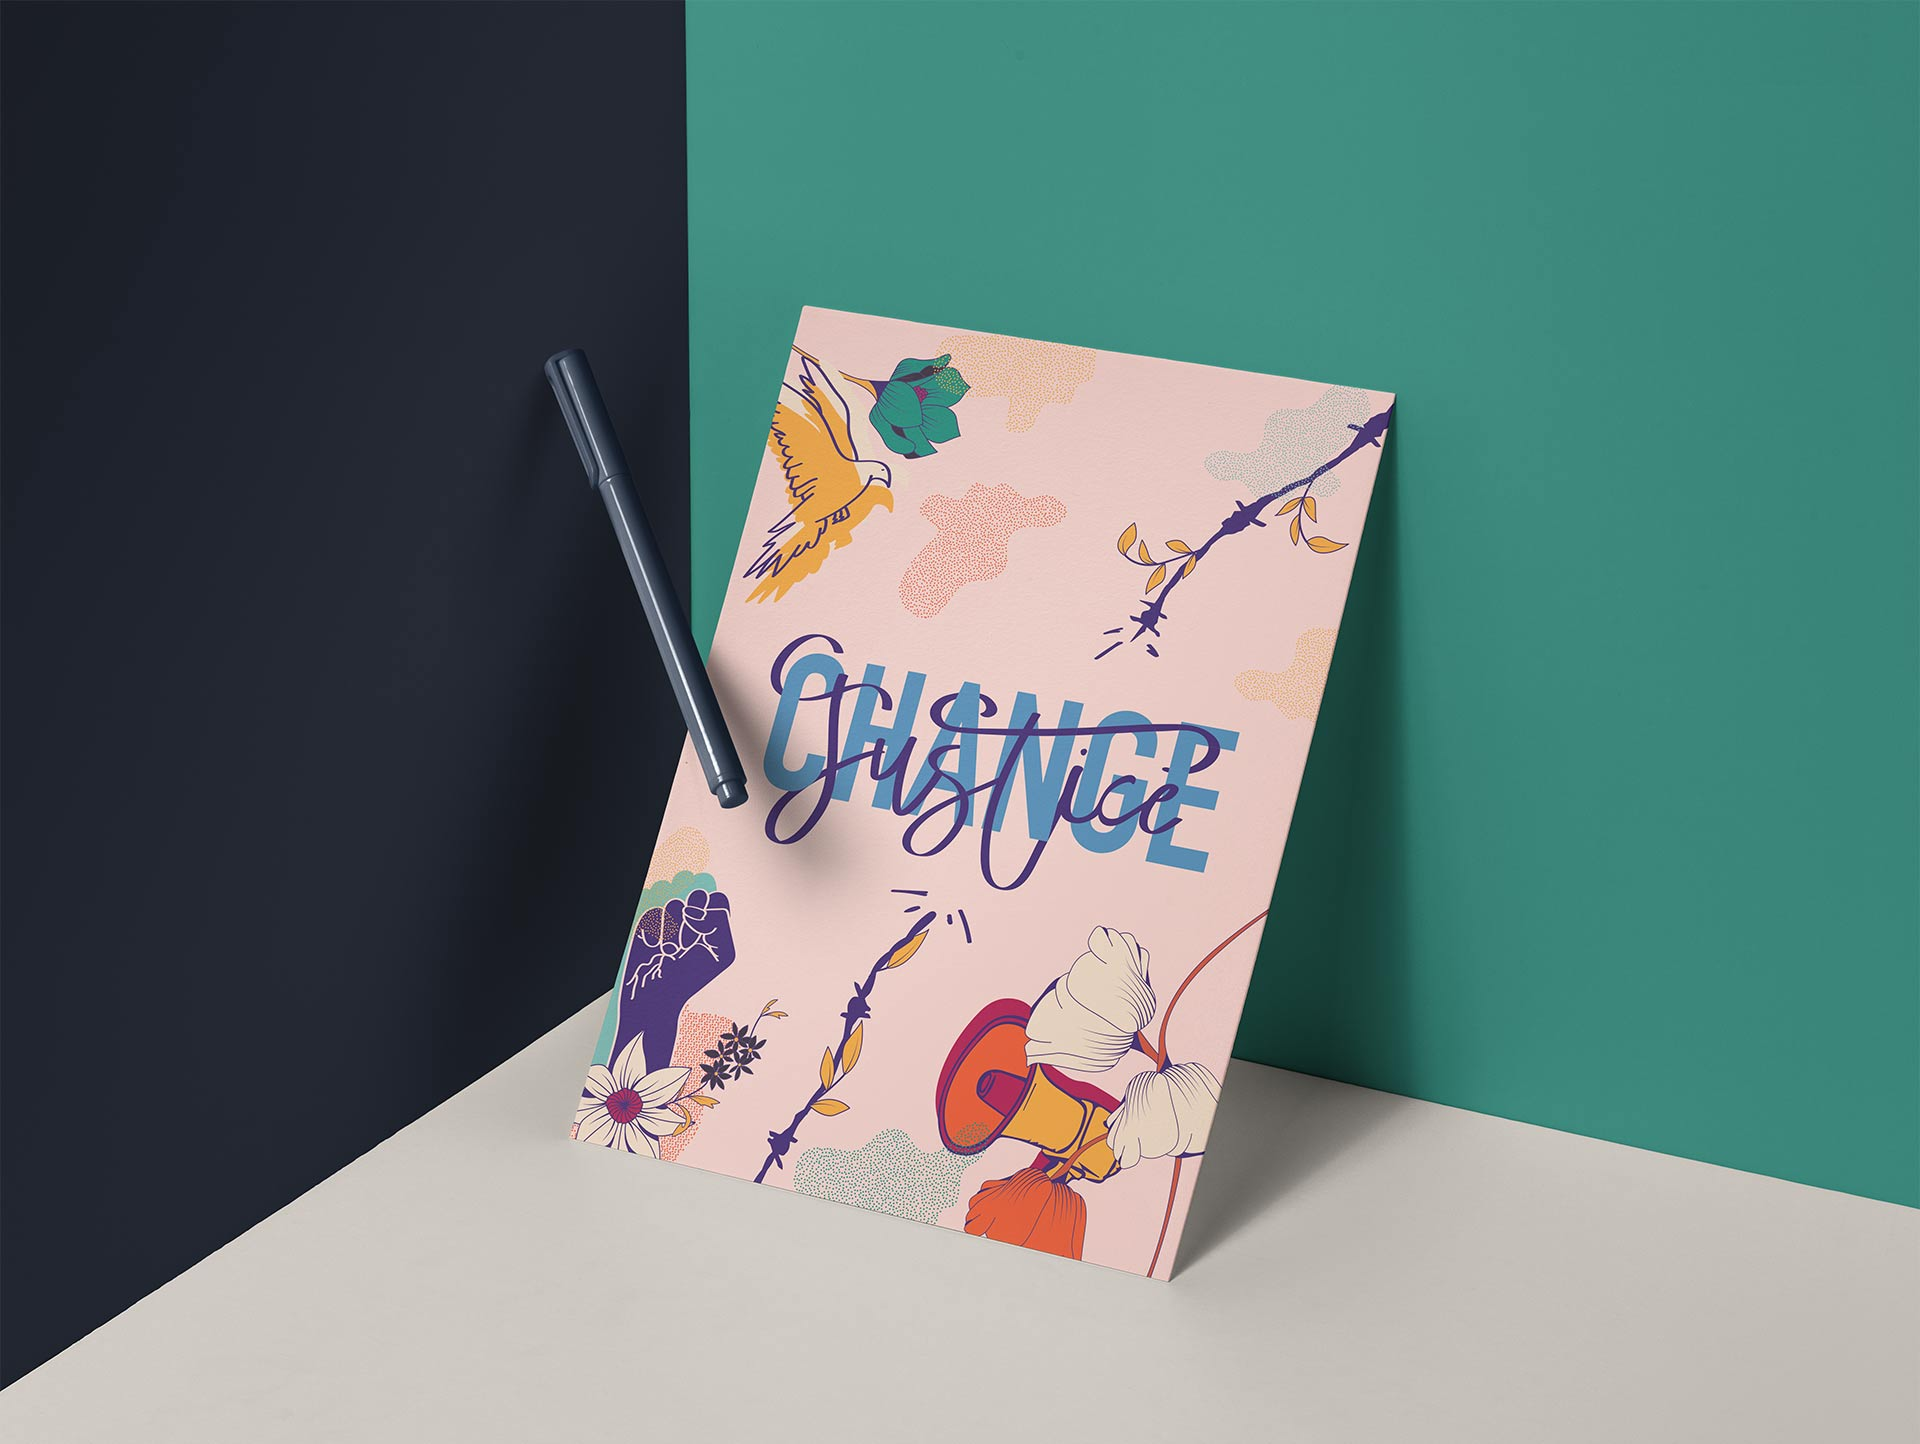 """'Change Justice' mockup poster. Image is typography of """"change justice"""" intertwined, a dove flying with flowers, barbered wire being broken, a fist up with flowers, and a megaphone with flowers"""